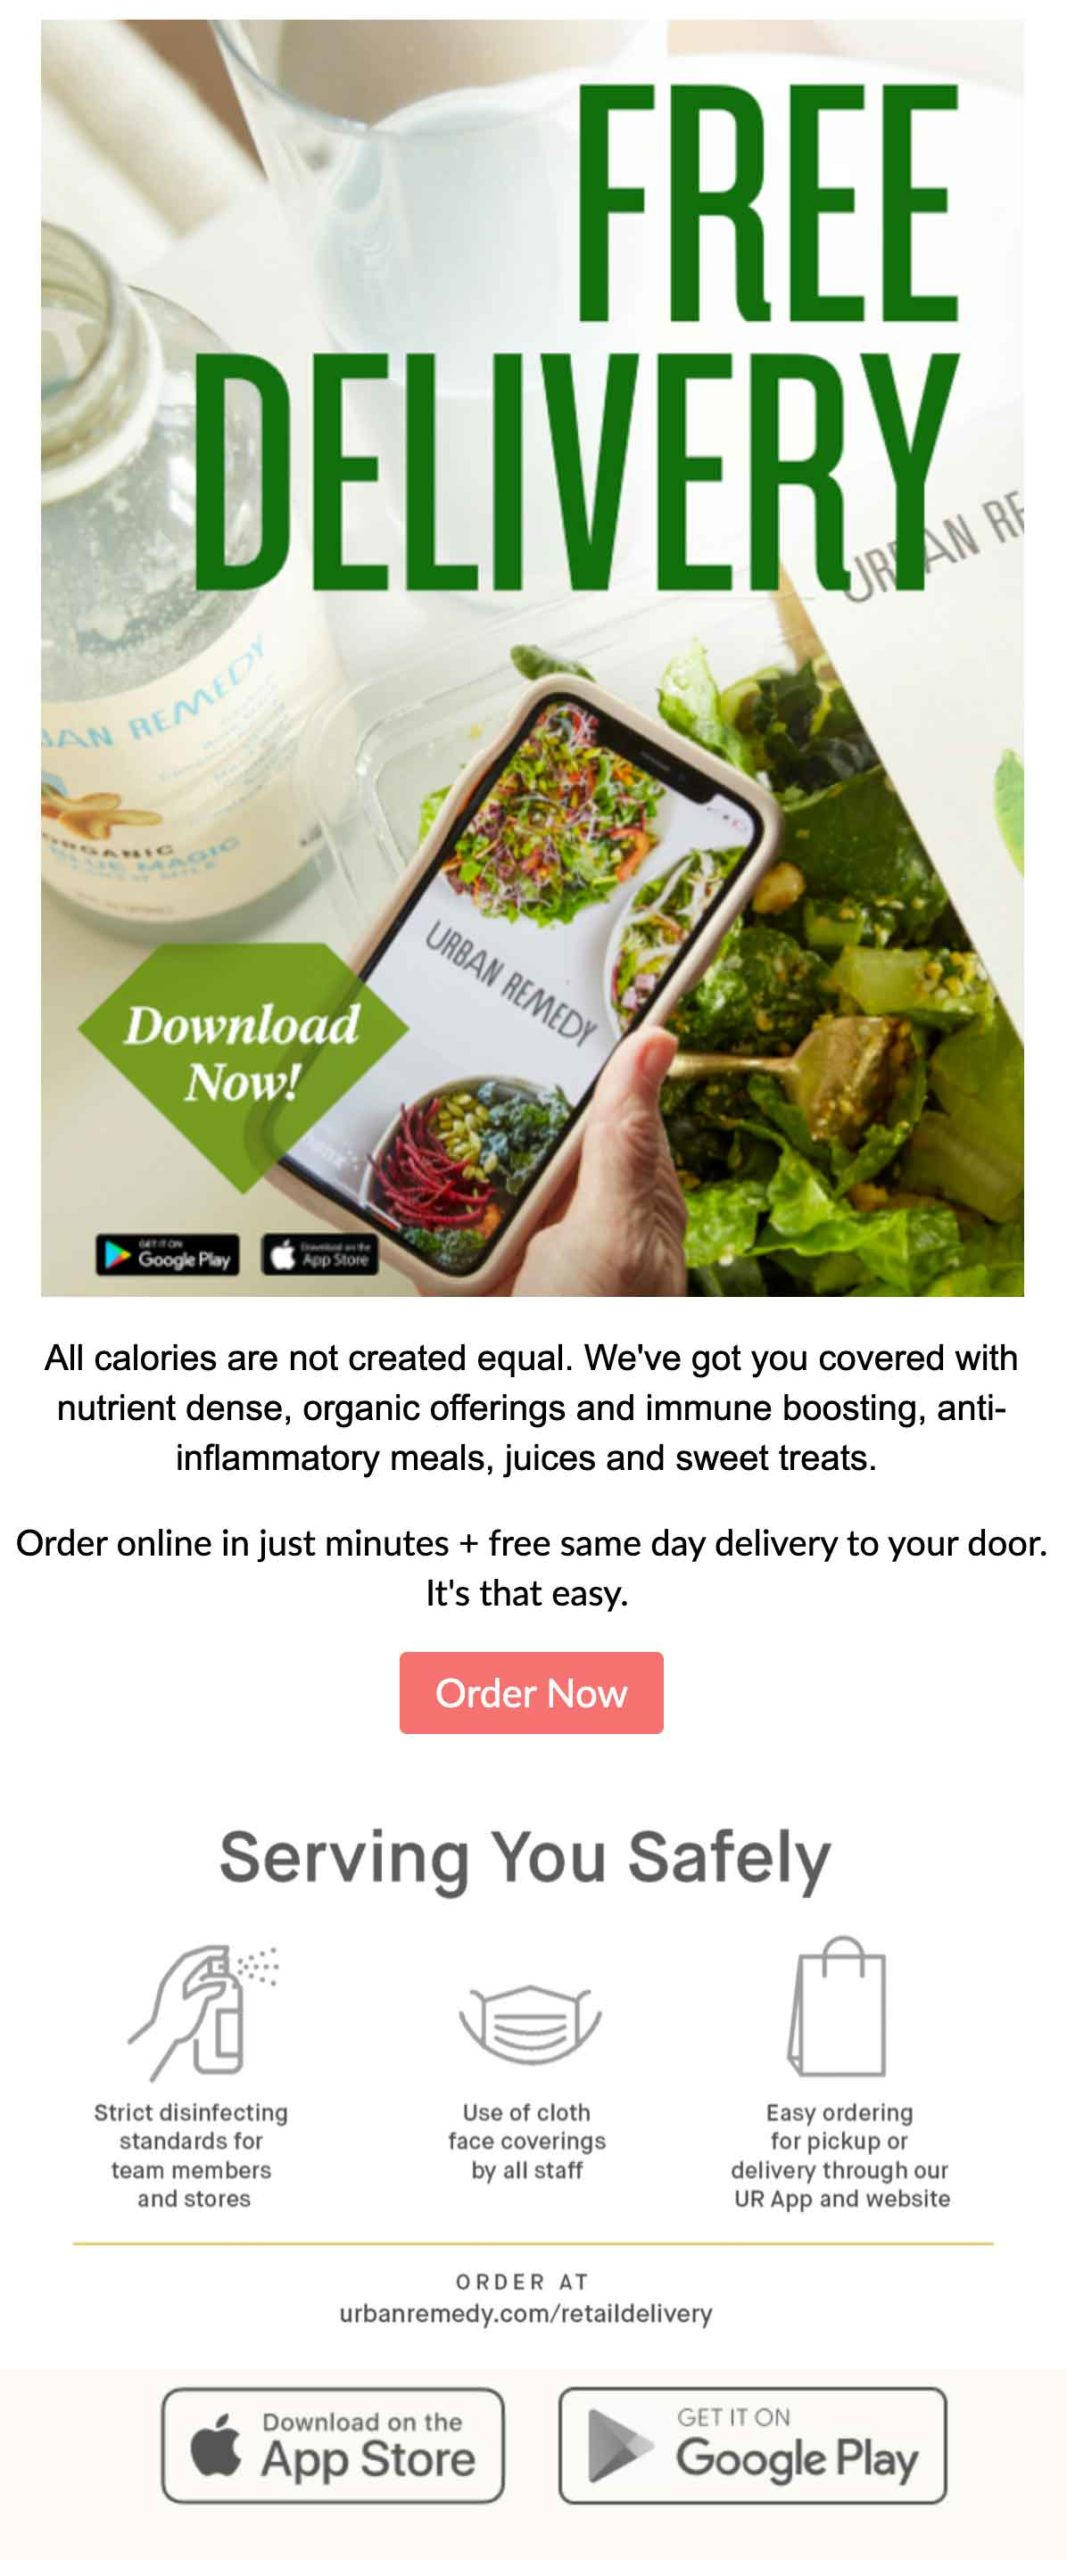 Urban Remedy: Free Delivery Email